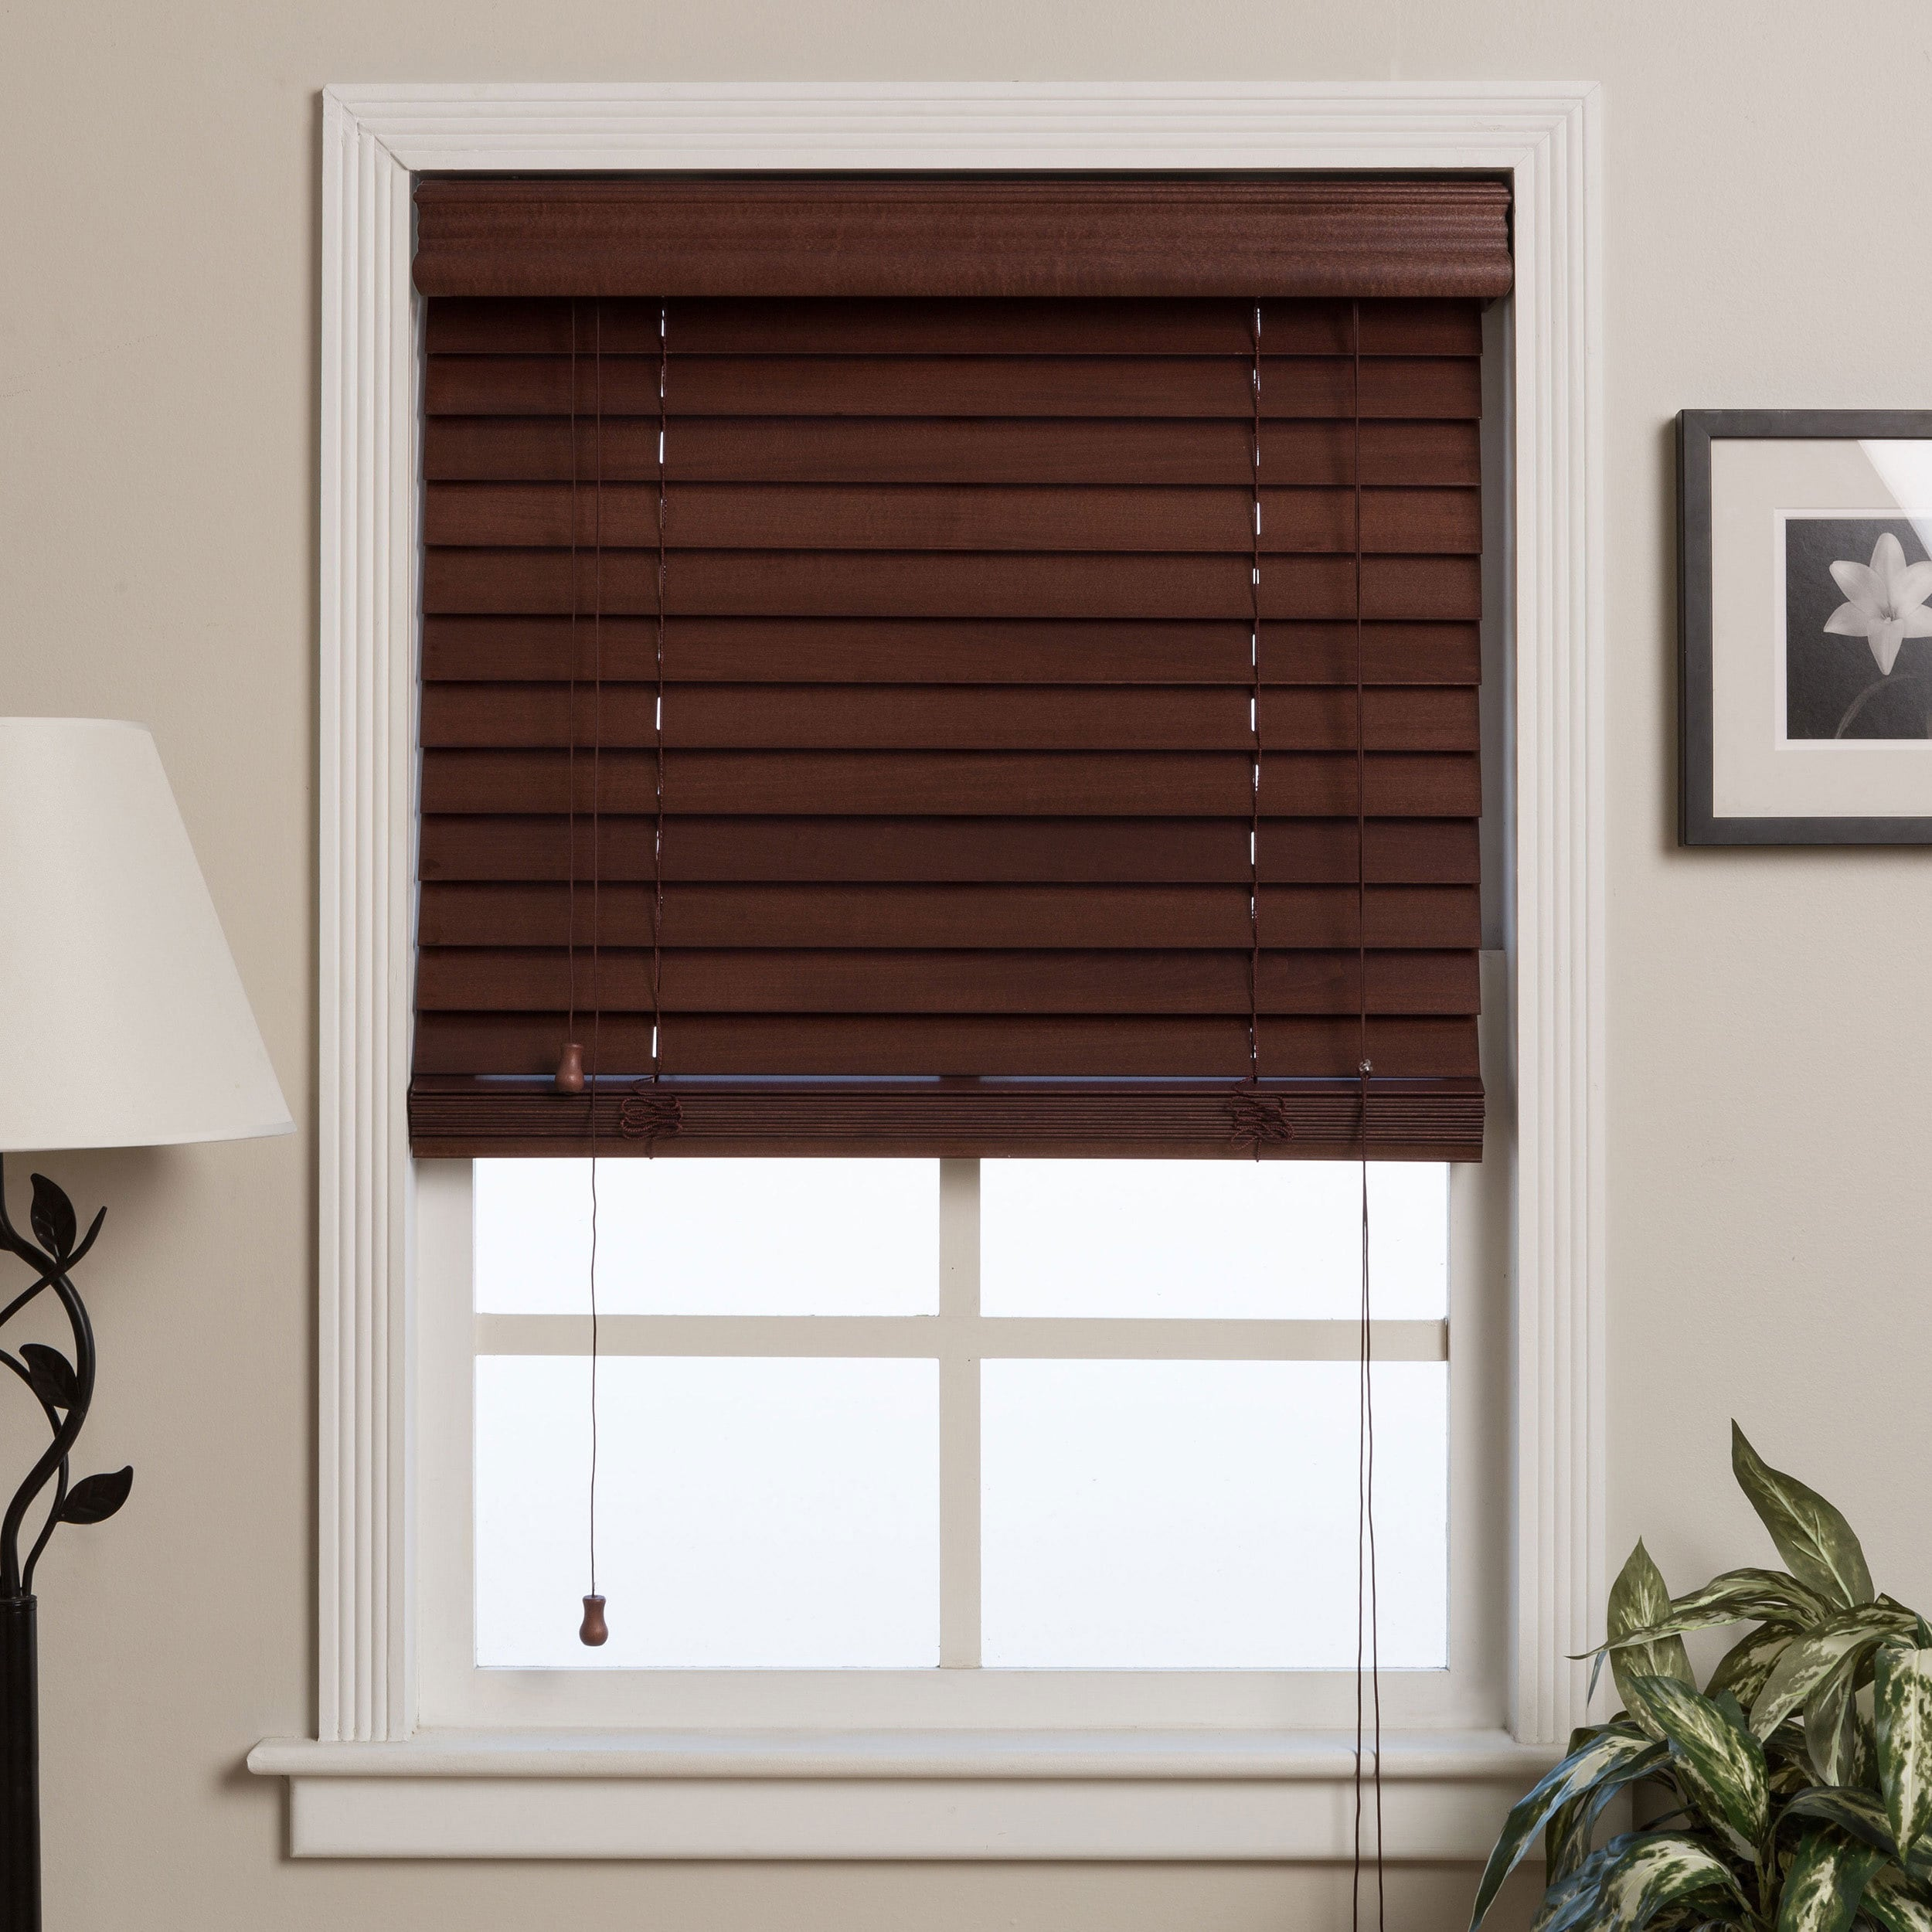 wooden window blinds shop arlo blinds customized 27-inch real wood window blinds - on sale UPPJZRW